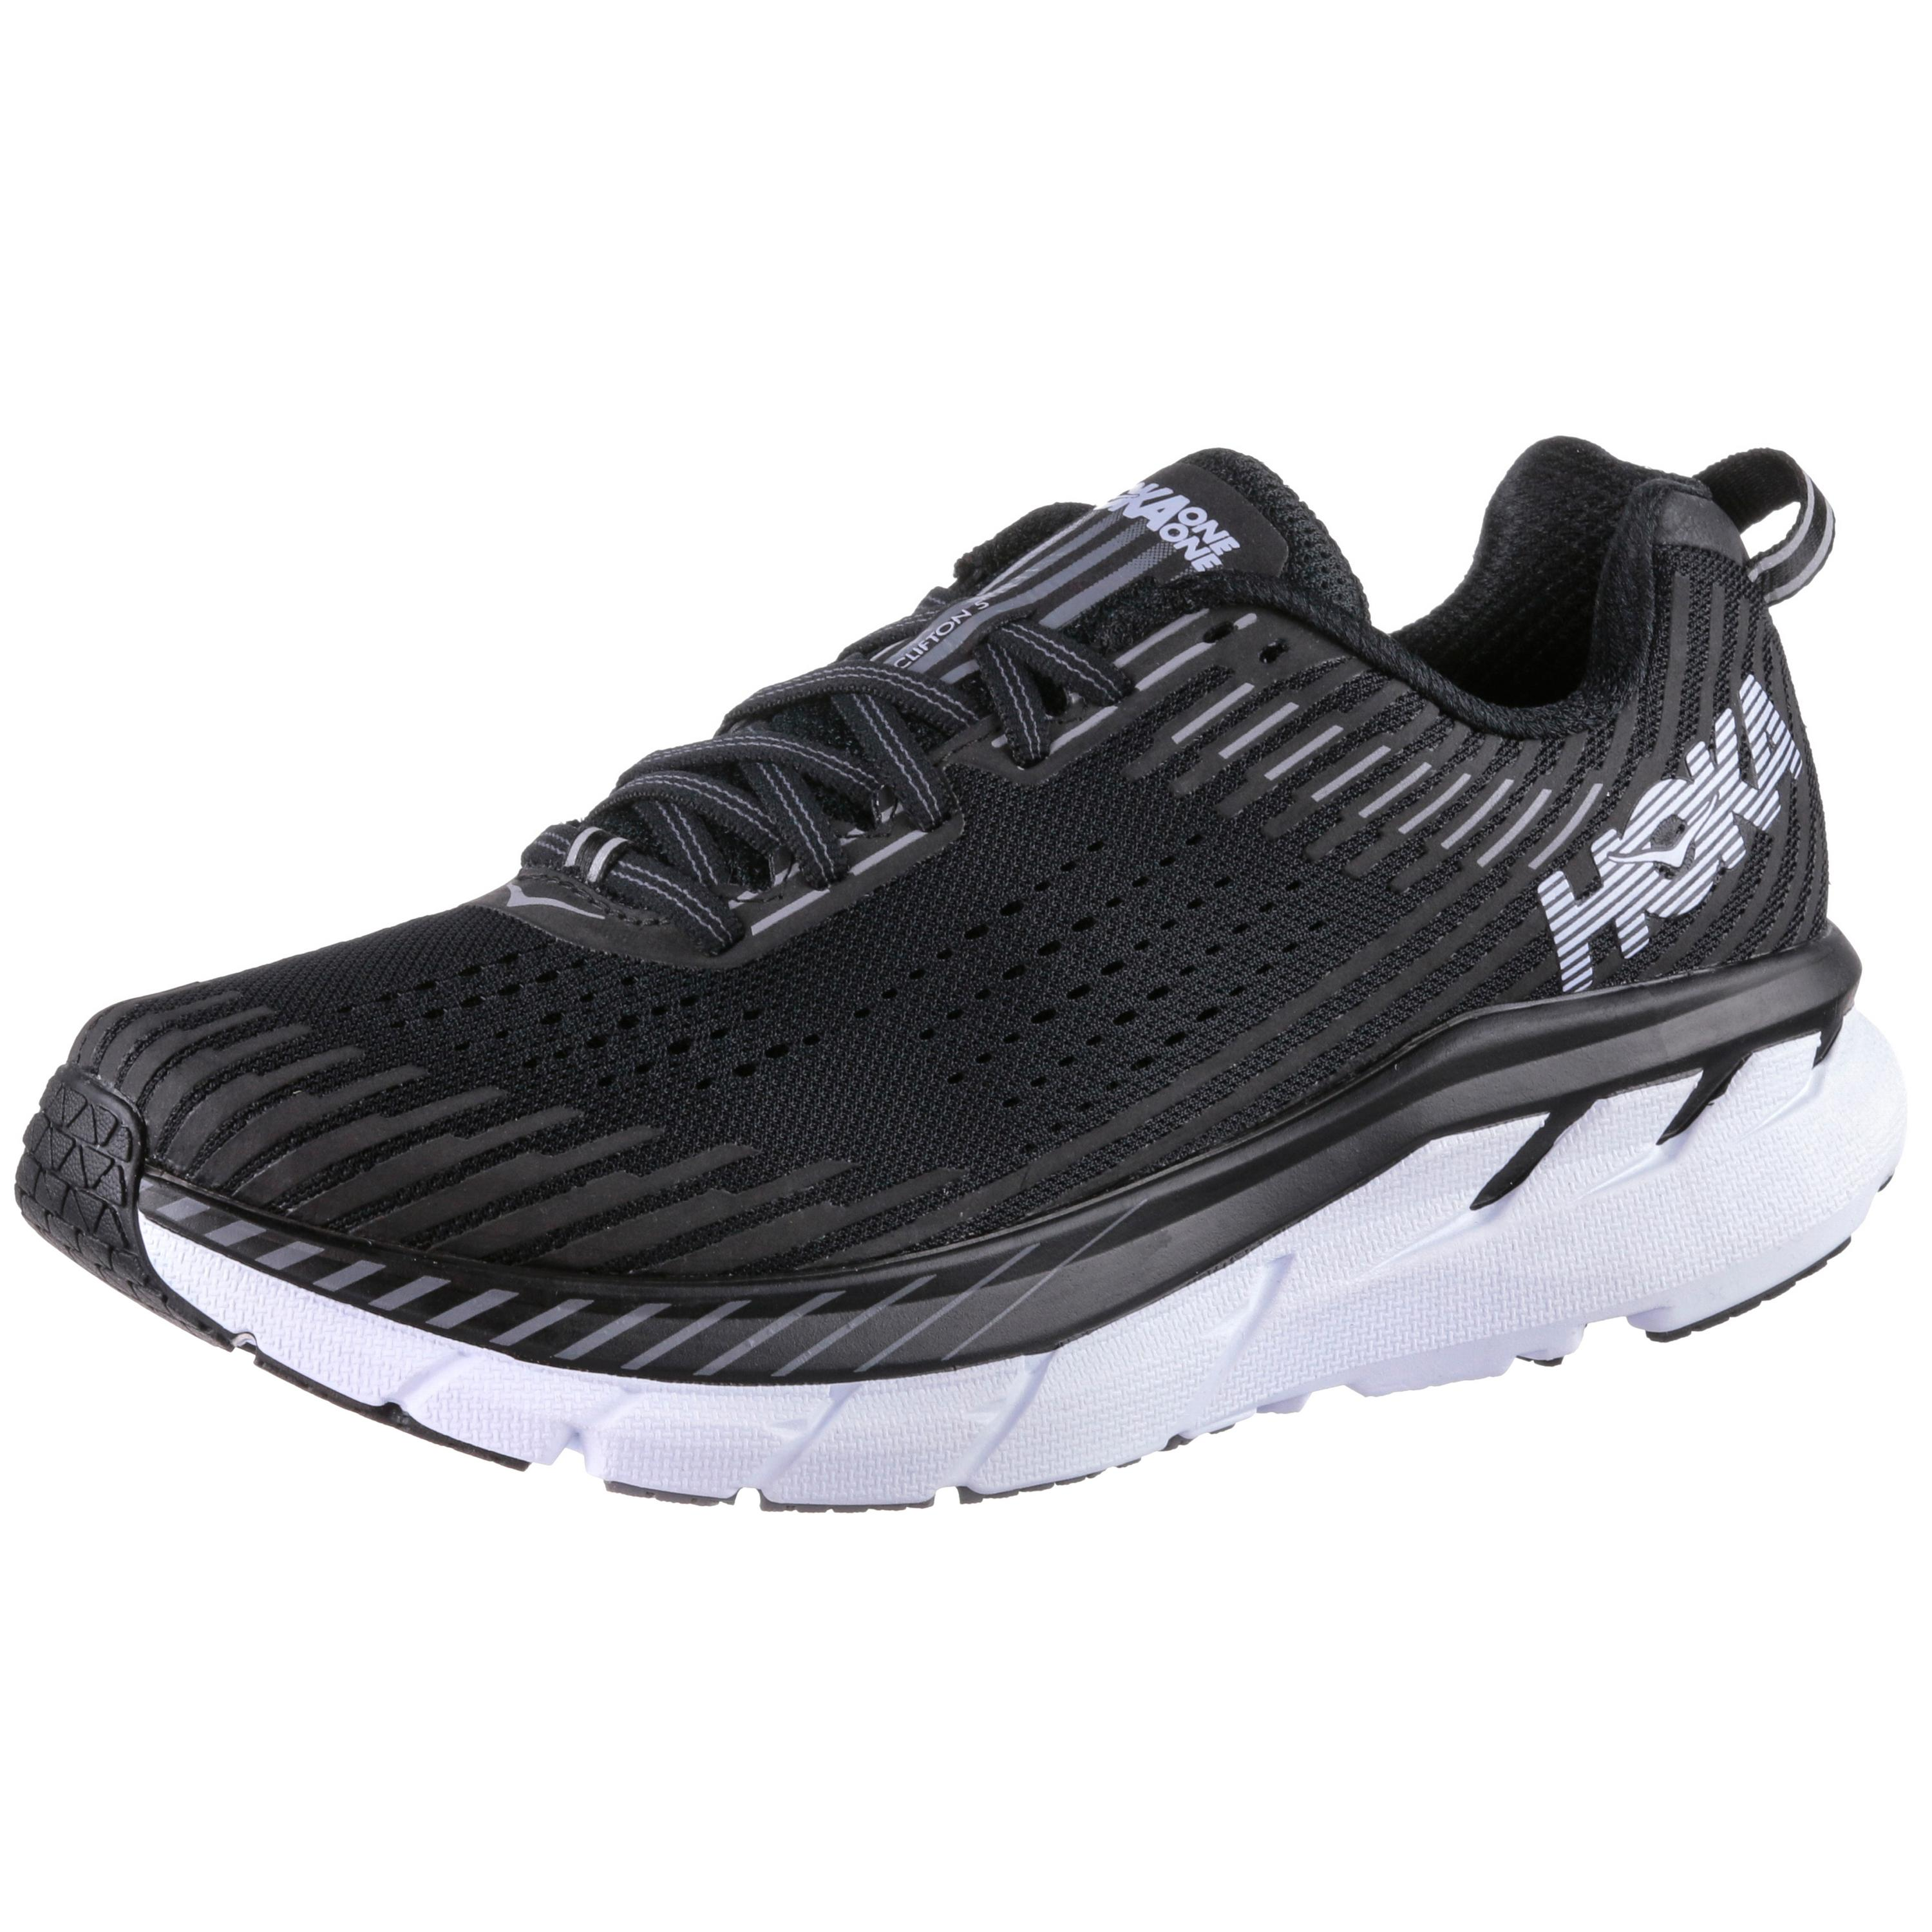 Hoka One One Clifton 5 Laufschuhe Damen